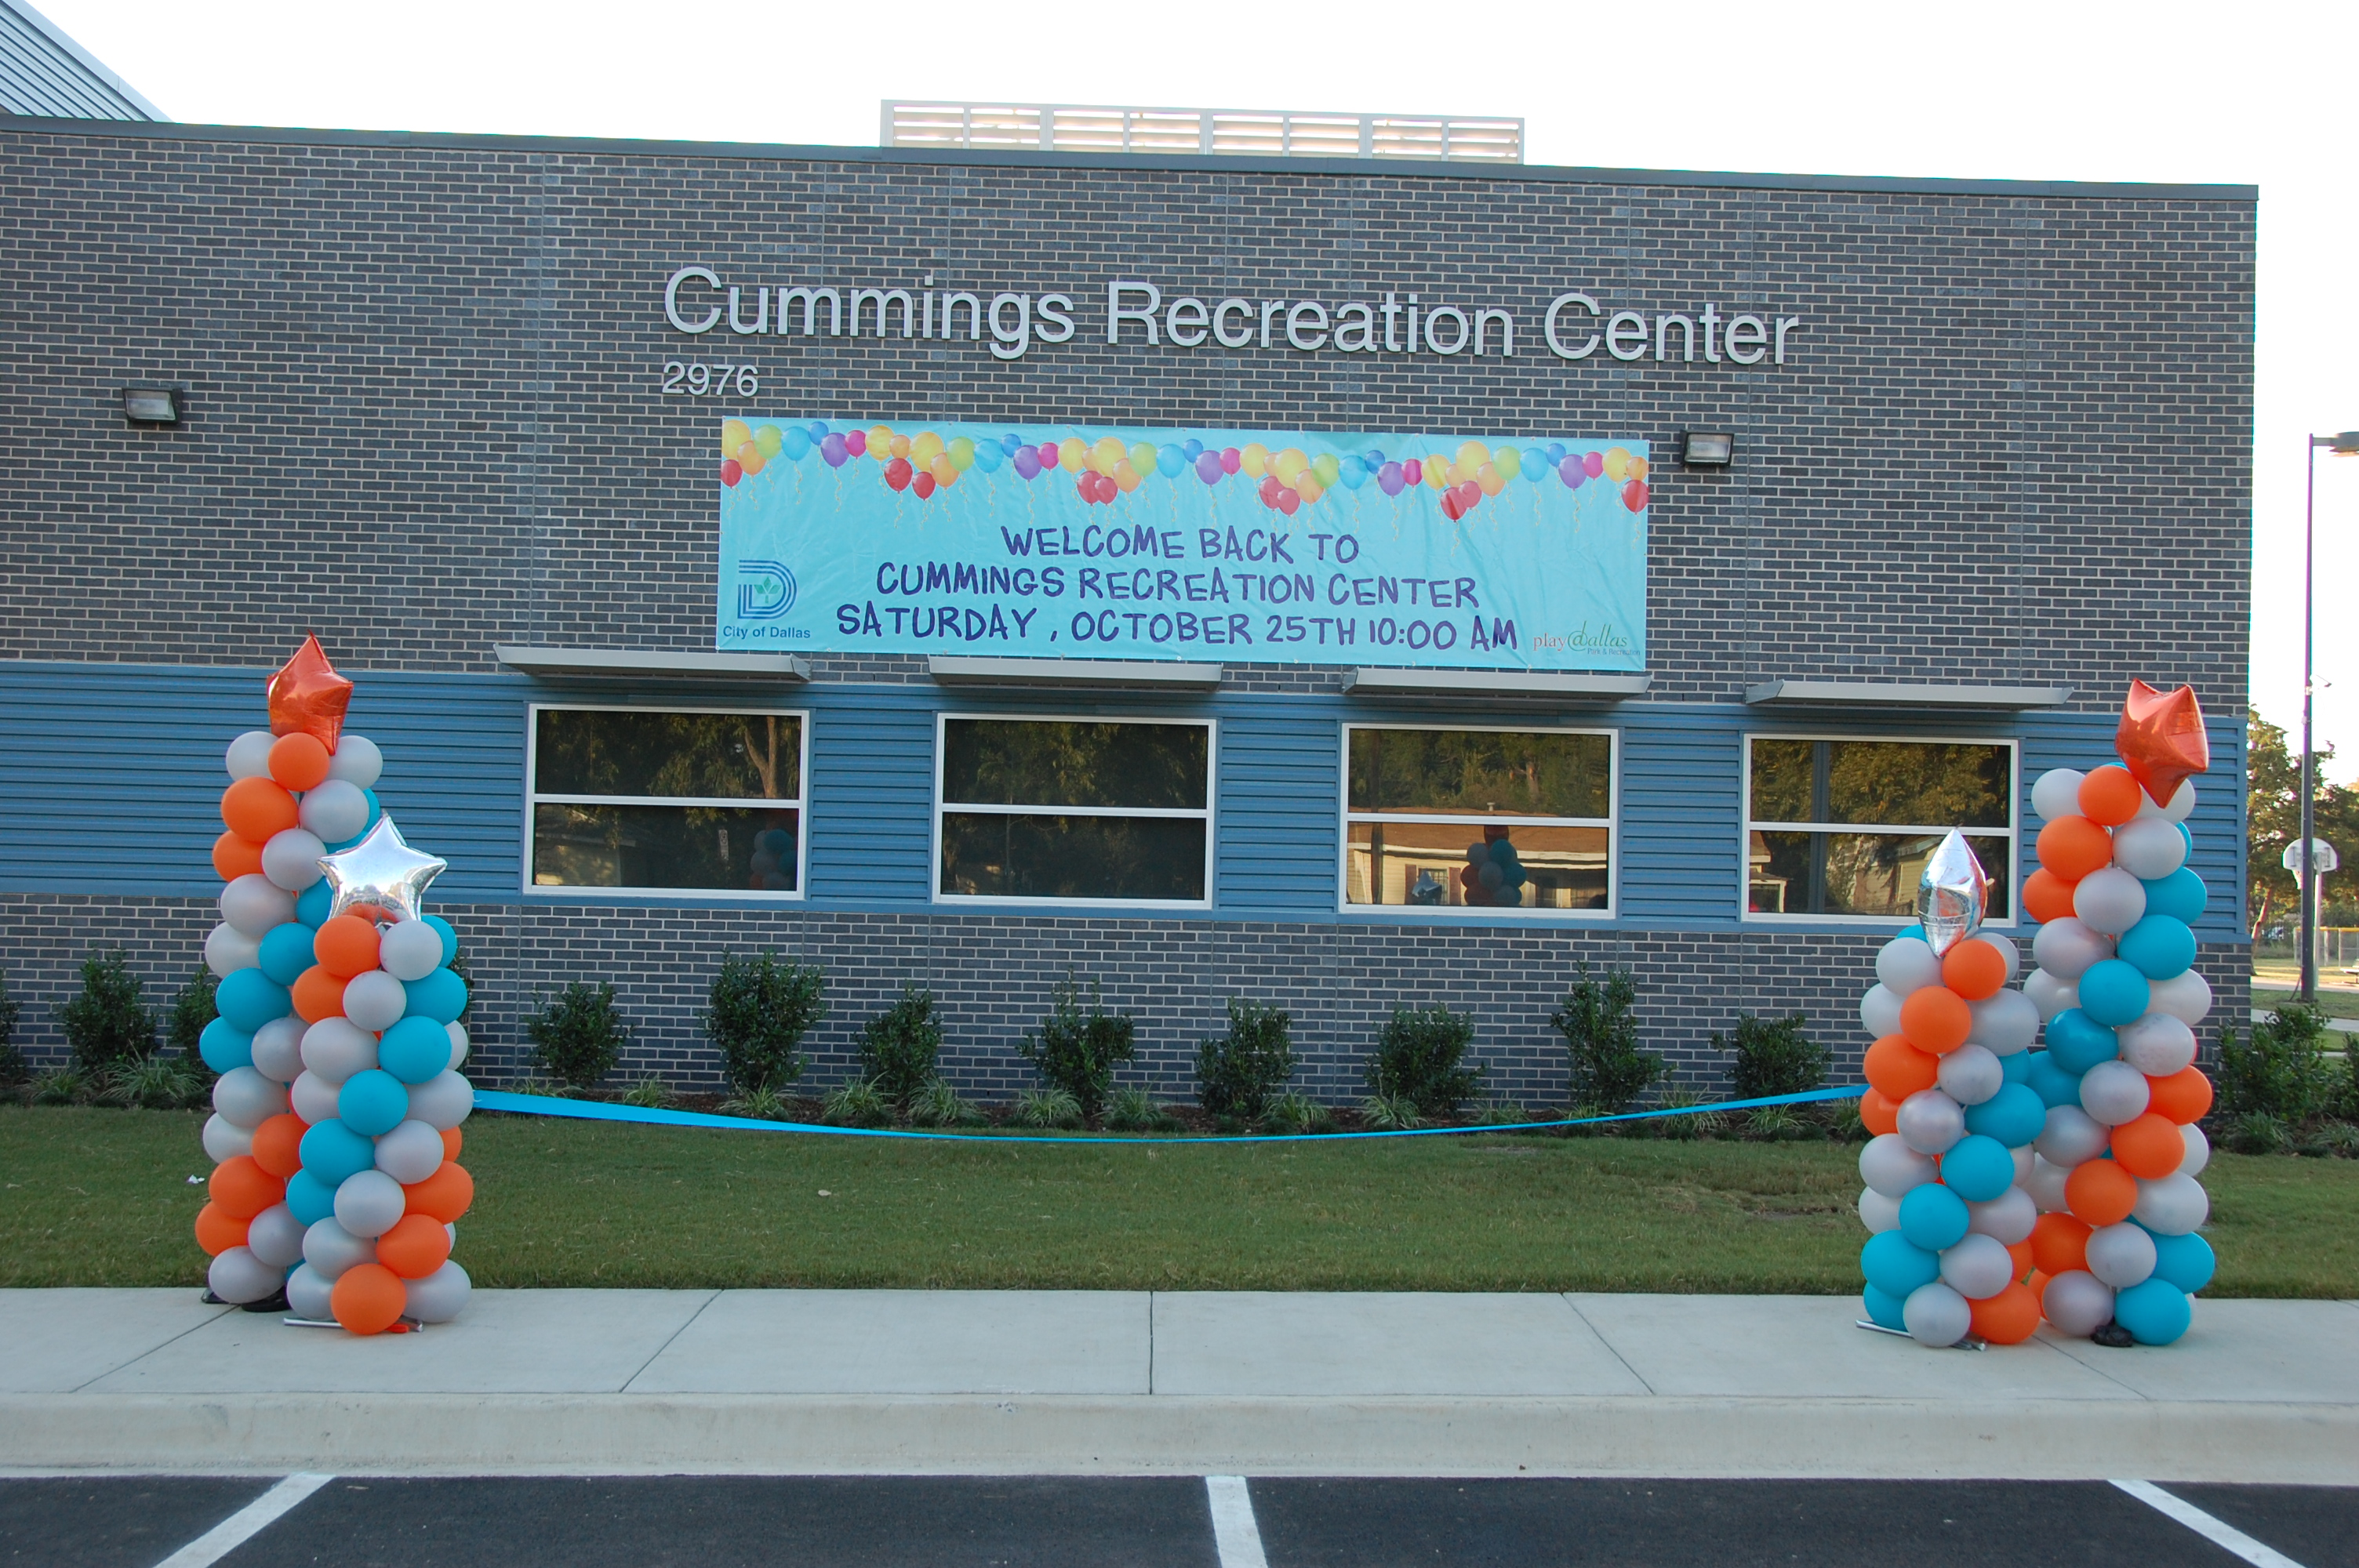 Cummings Recreation Center